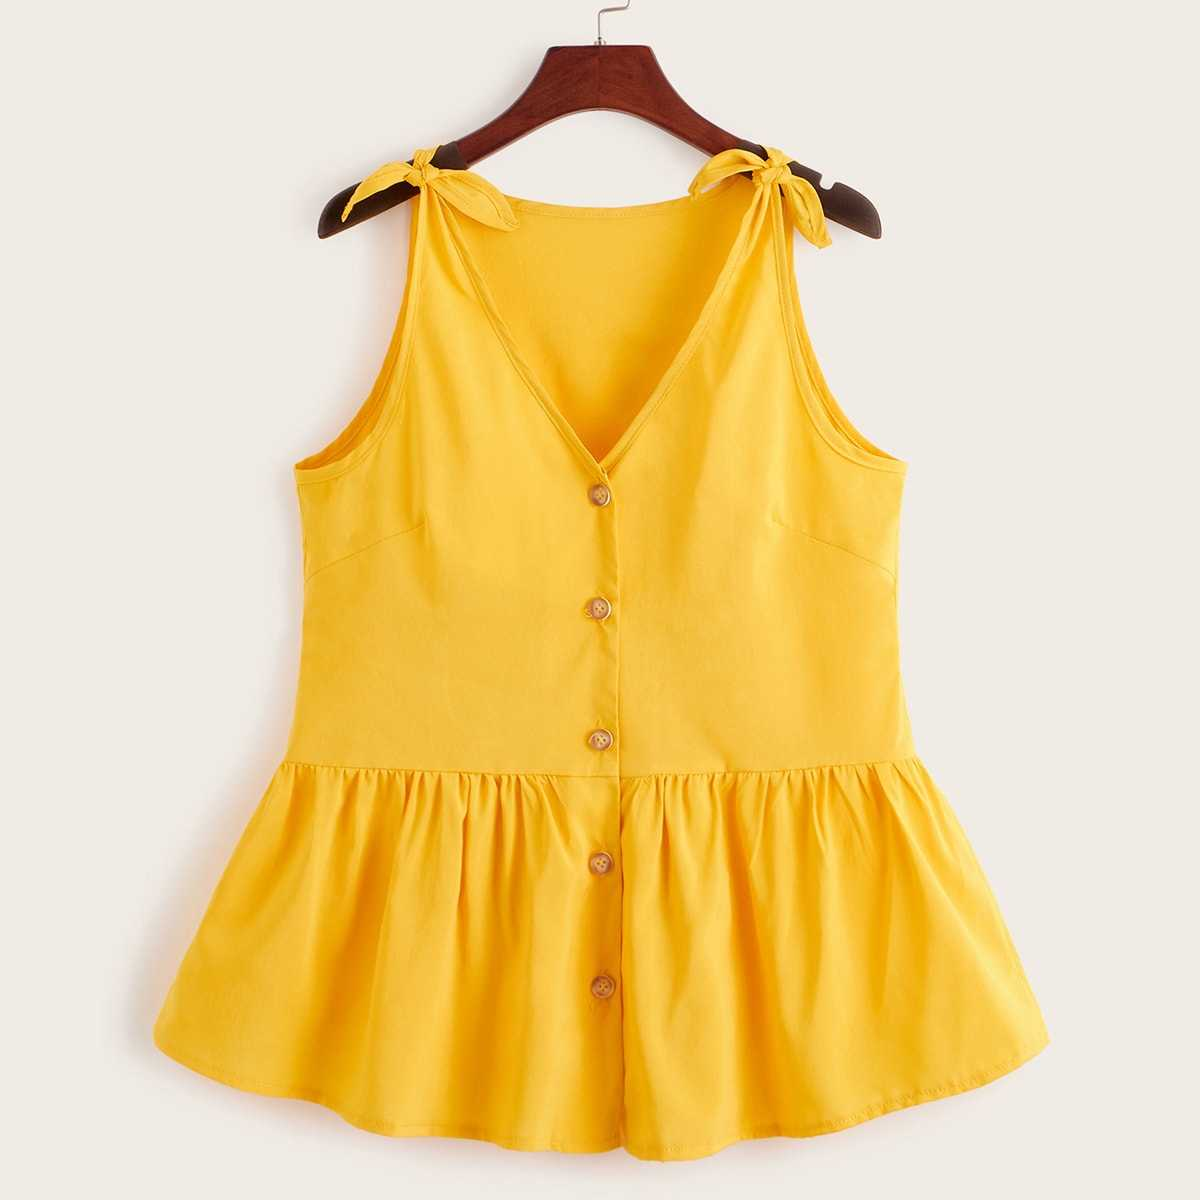 Tie Shoulder Button Front Peplum Top in Yellow by ROMWE on GOOFASH